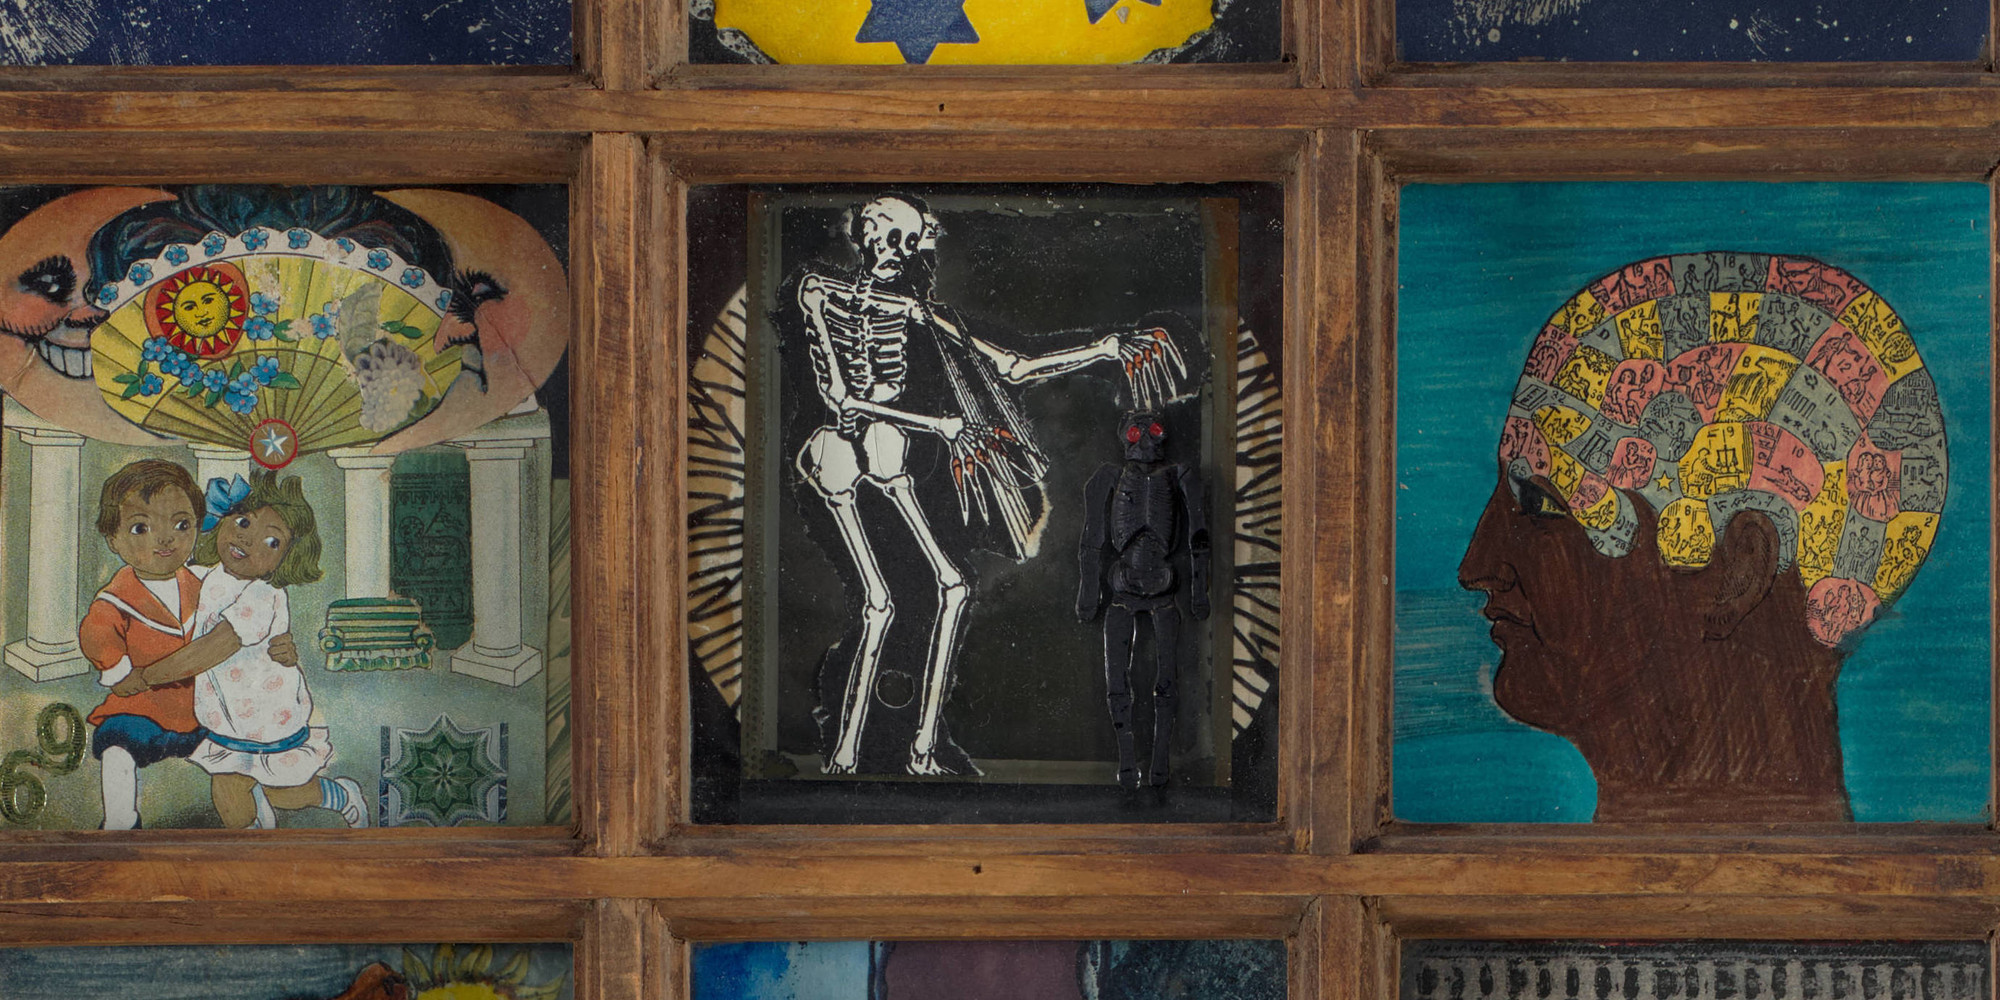 Betye Saar. <em>Black Girl's Window</em> (detail). 1969. Wooden window frame with paint, cut-and-pasted printed and painted papers, daguerreotype, lenticular print, and plastic figurine, 35 3/4 × 18 × 1 1/2&quot; (90.8 × 45.7 × 3.8 cm). Gift of Candace King Weir through The Modern Women's Fund, and Committee on Painting and Sculpture Funds